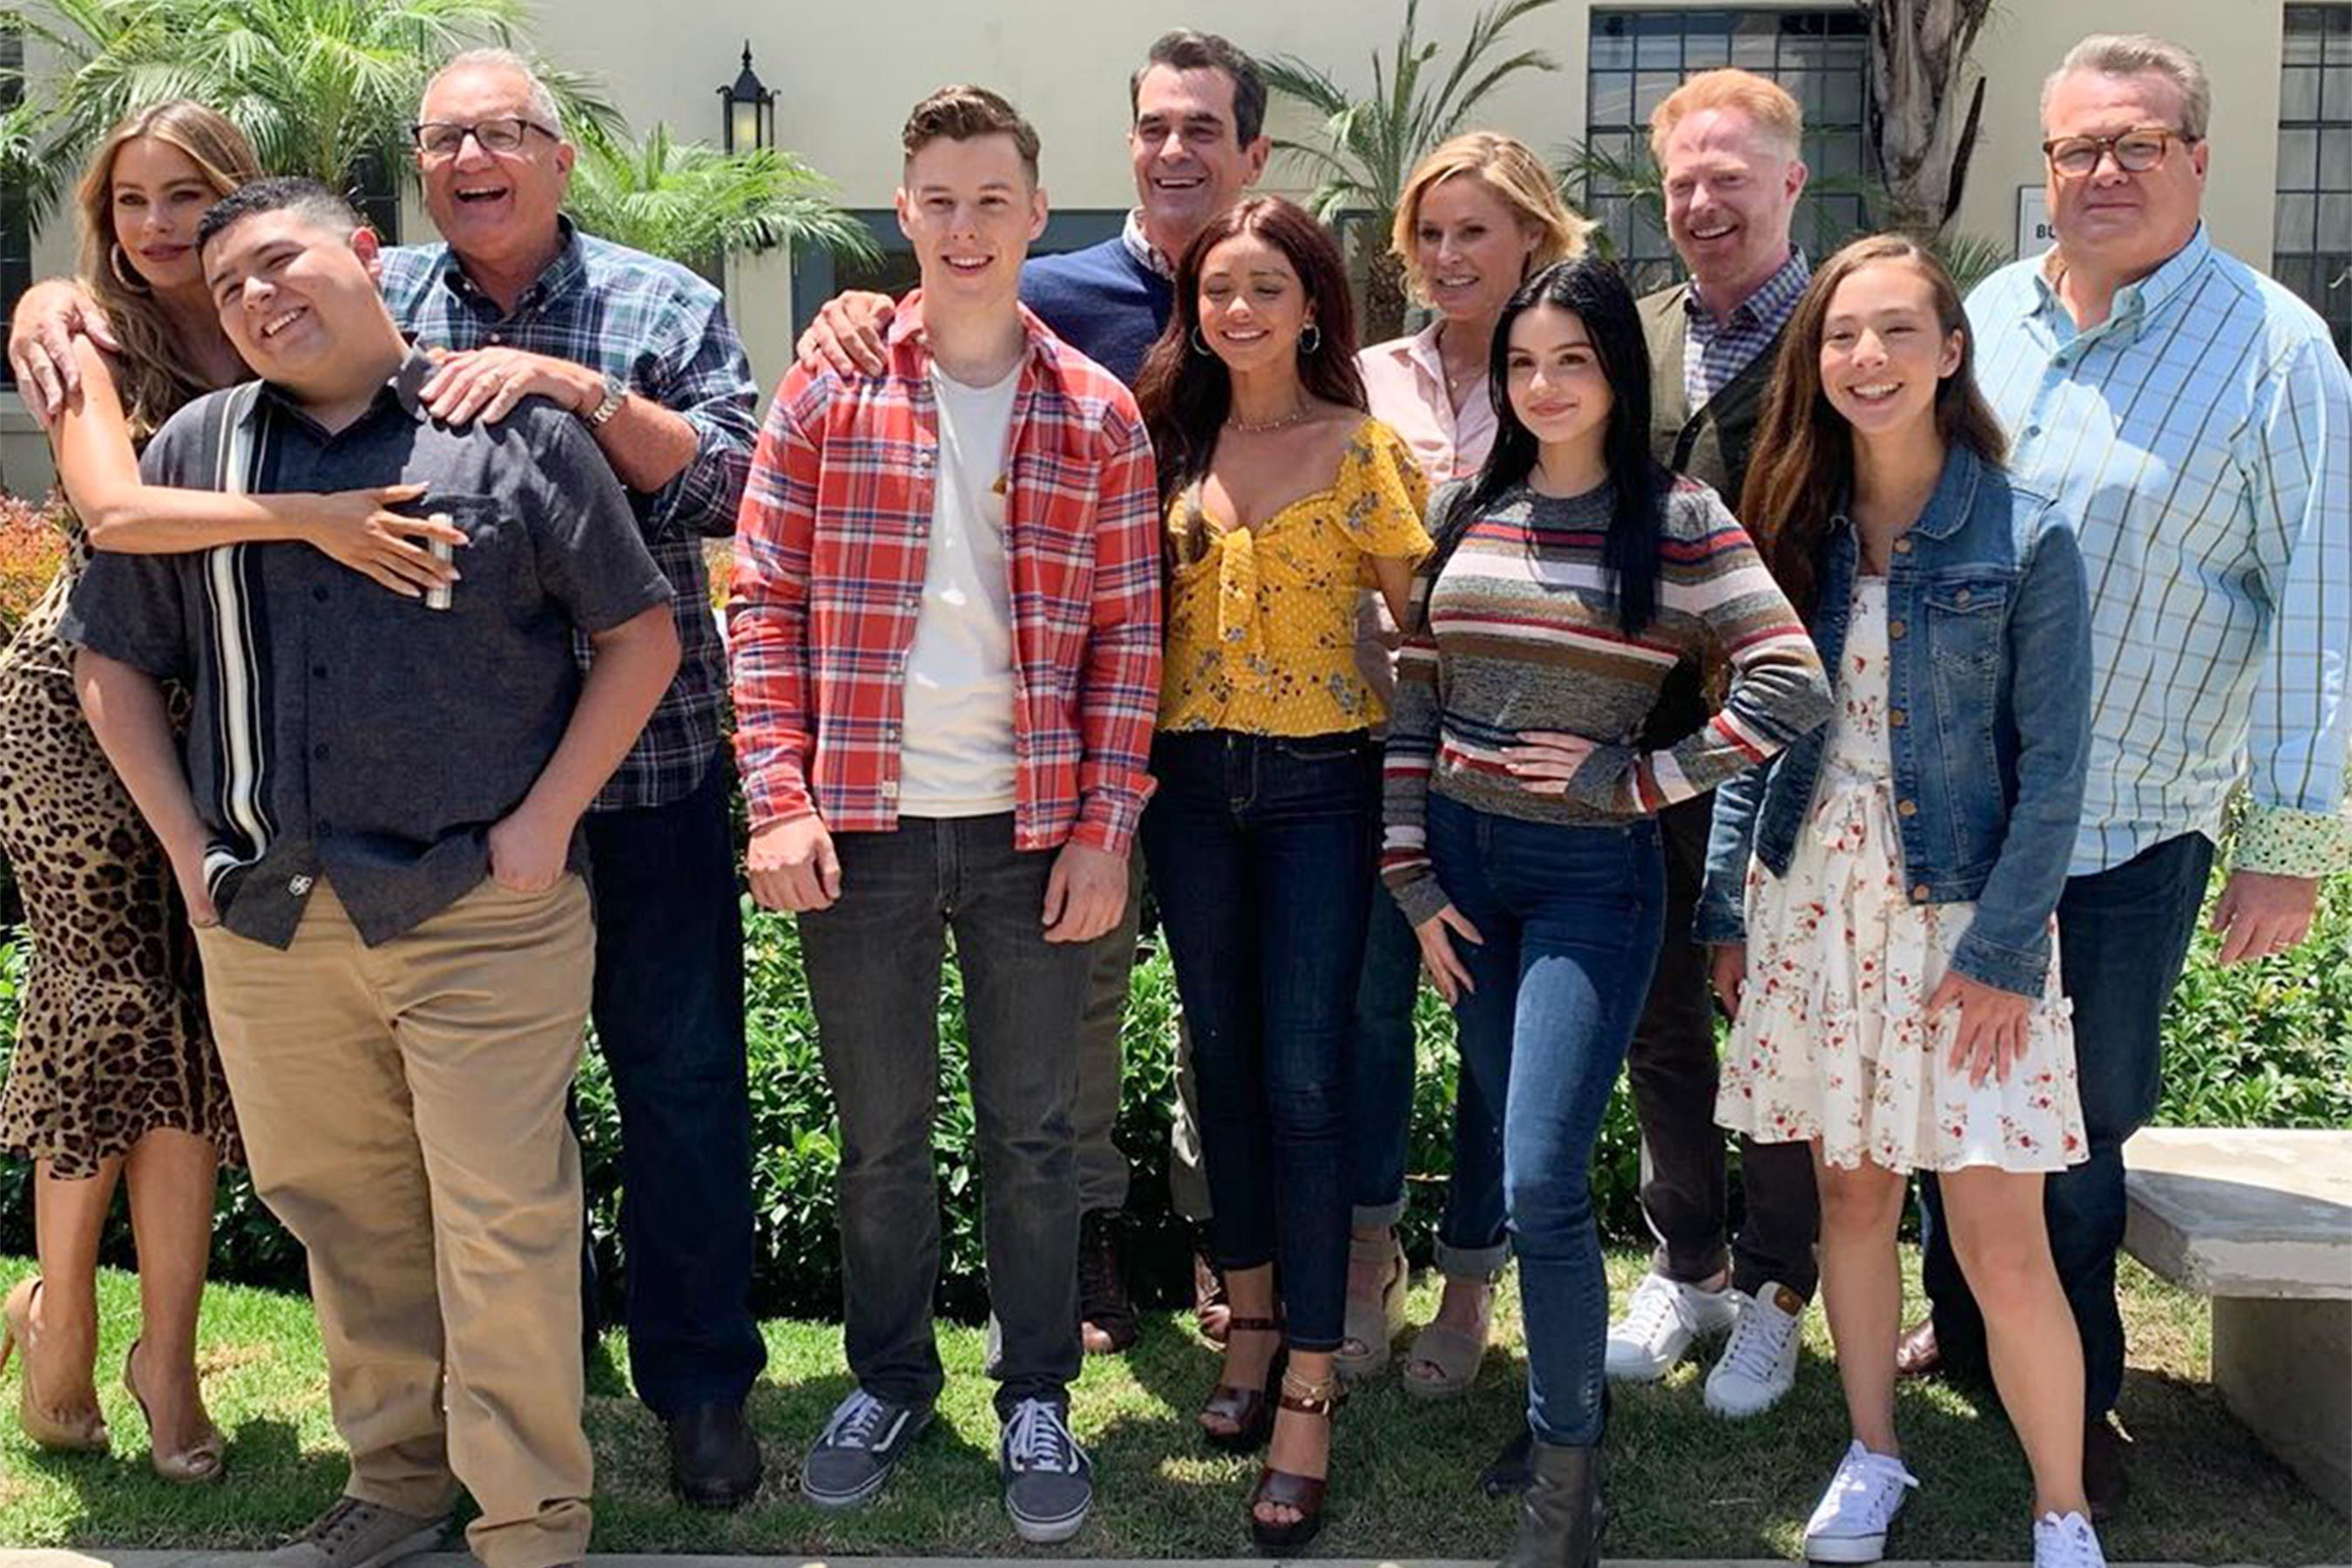 Abc S Promotional Photo For Modern Family S Final Episodes Will Tug At Your Heart Strings In 2020 Modern Family Charlie Chaplin Modern Times Photo